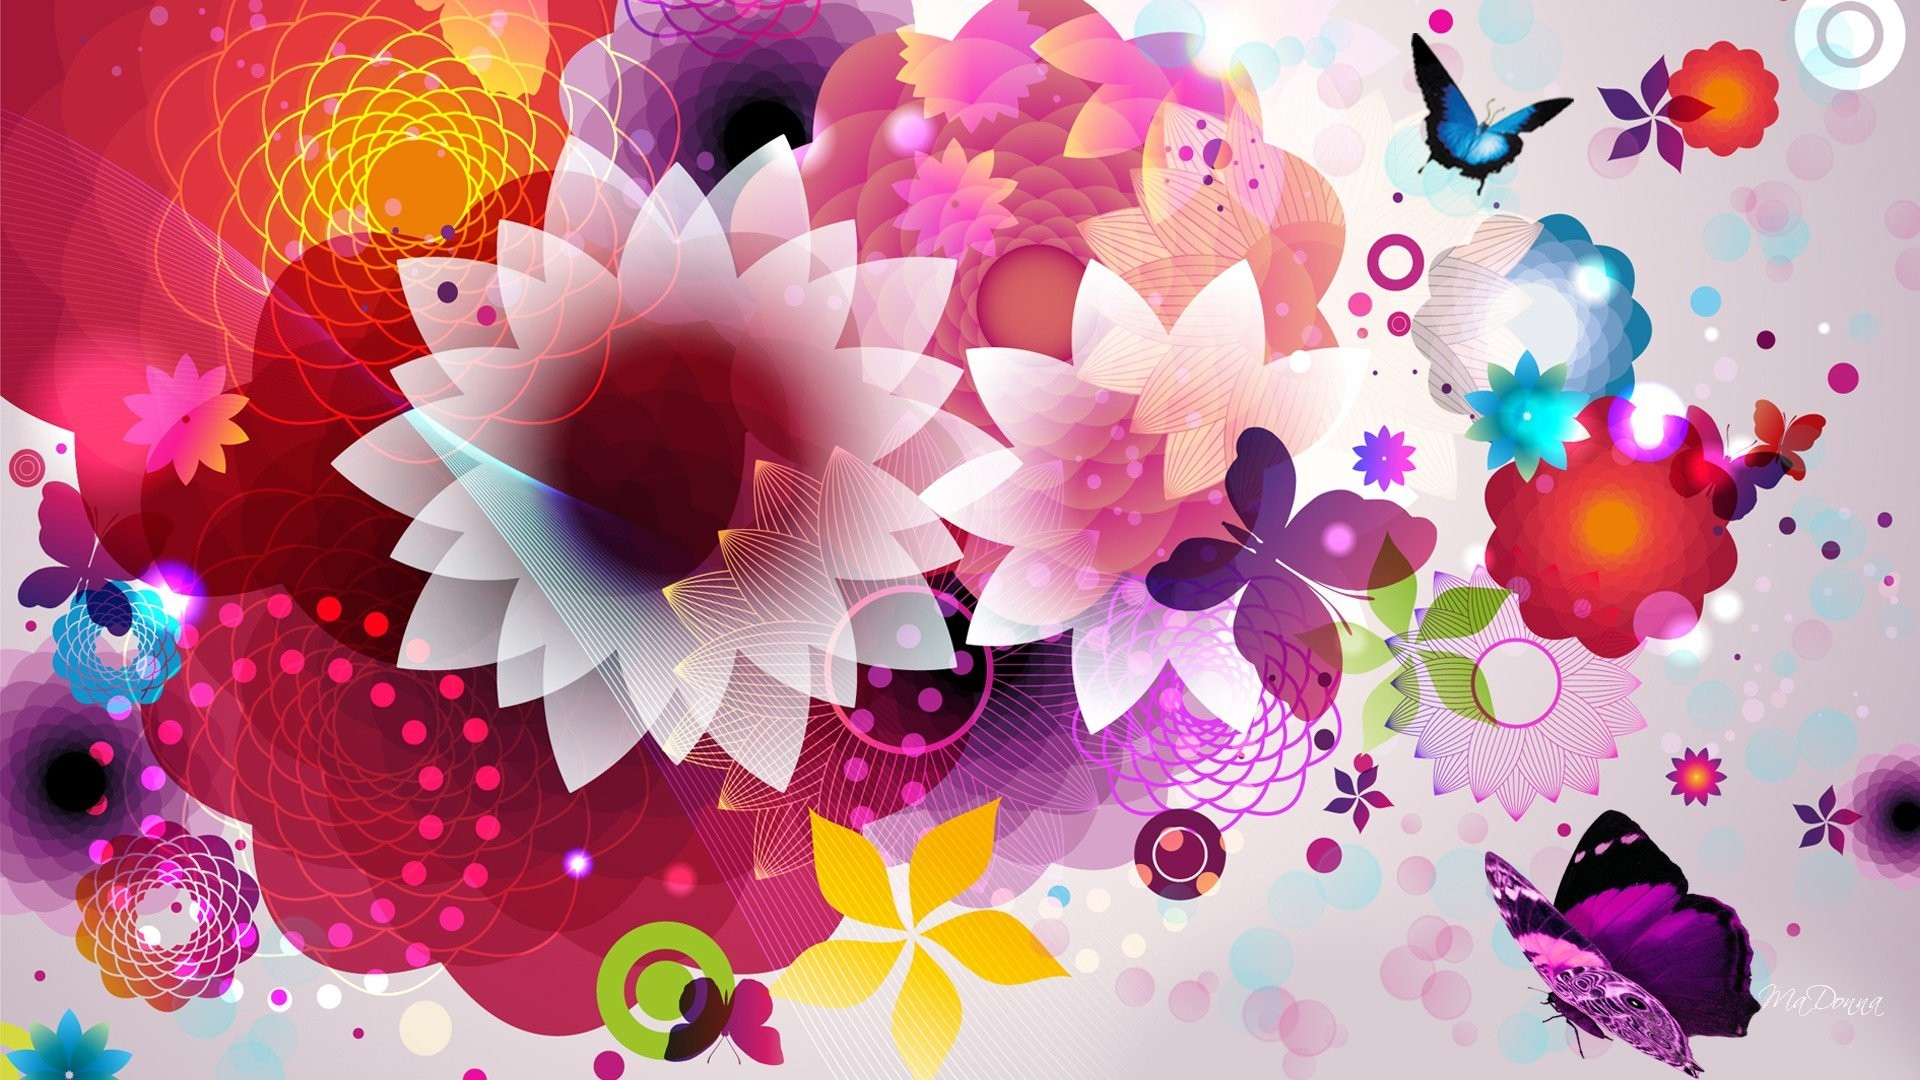 Free Colorful Flower Desktop Wallpaper: Colorful Flower Wallpapers (77+ Images